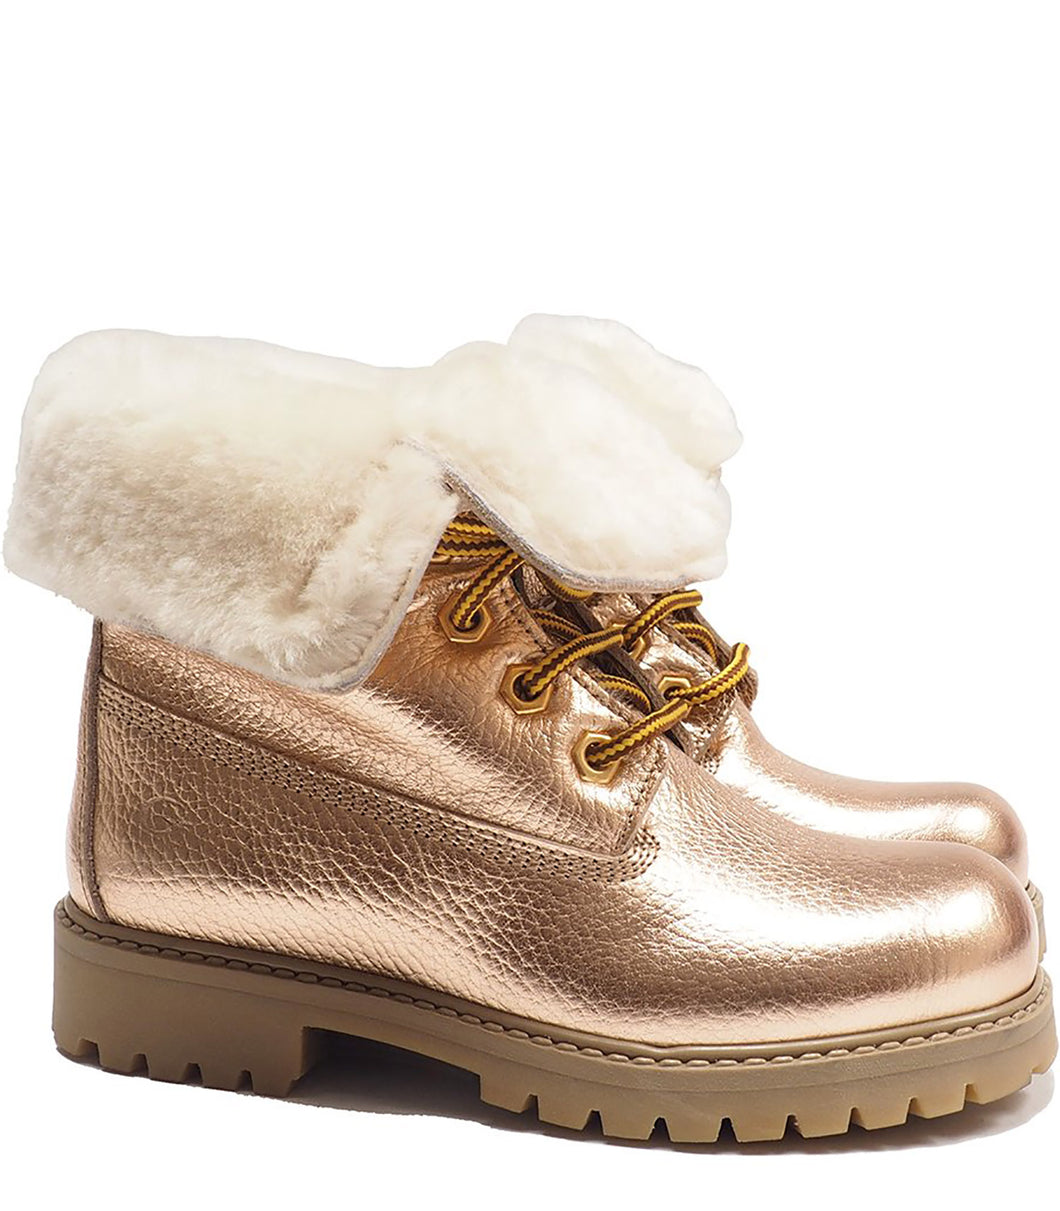 Boots in metallic effect champagne elk leather with fur